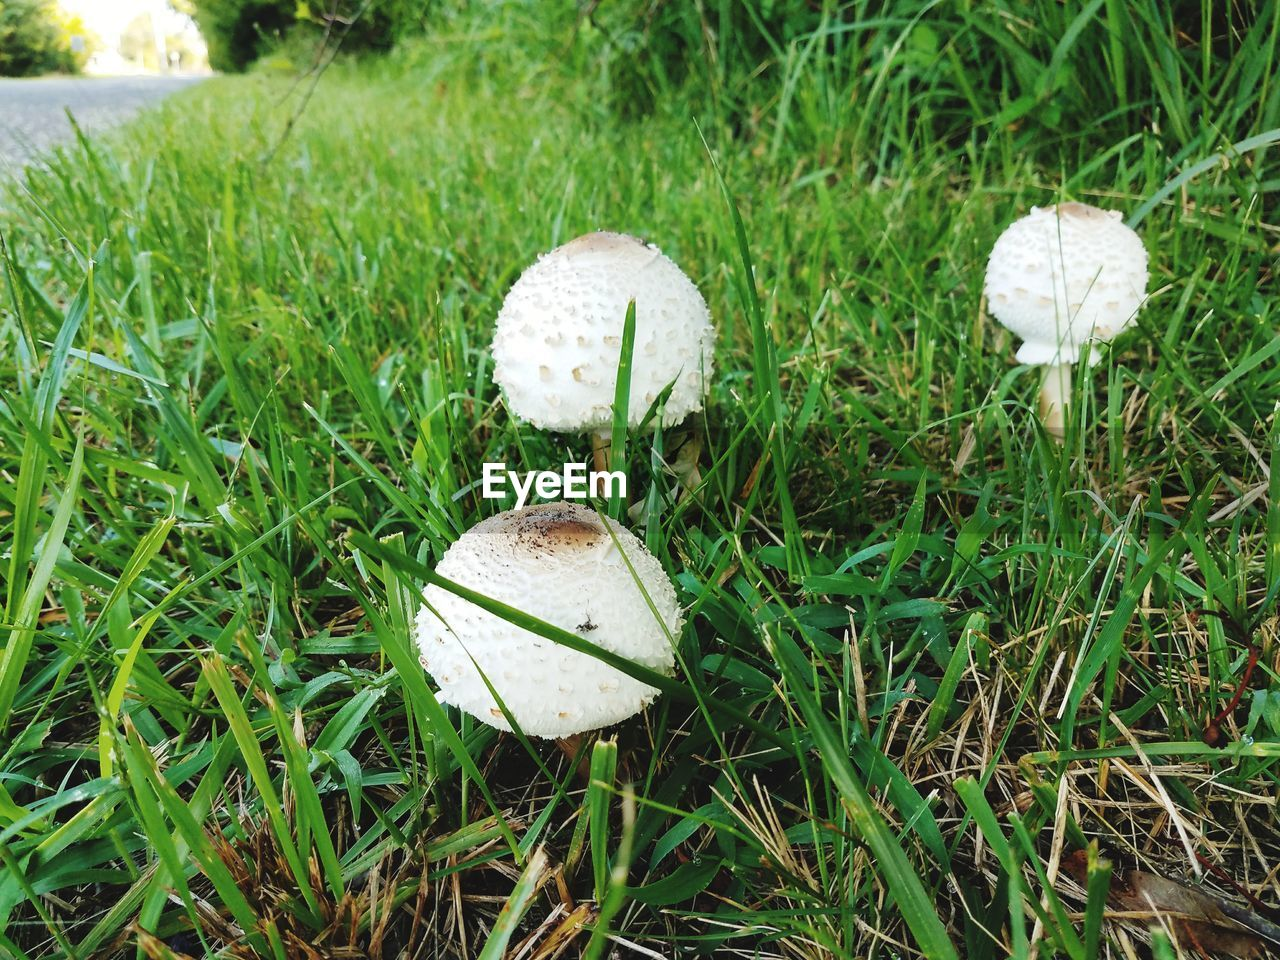 Close-up of white mushrooms growing on grassy field